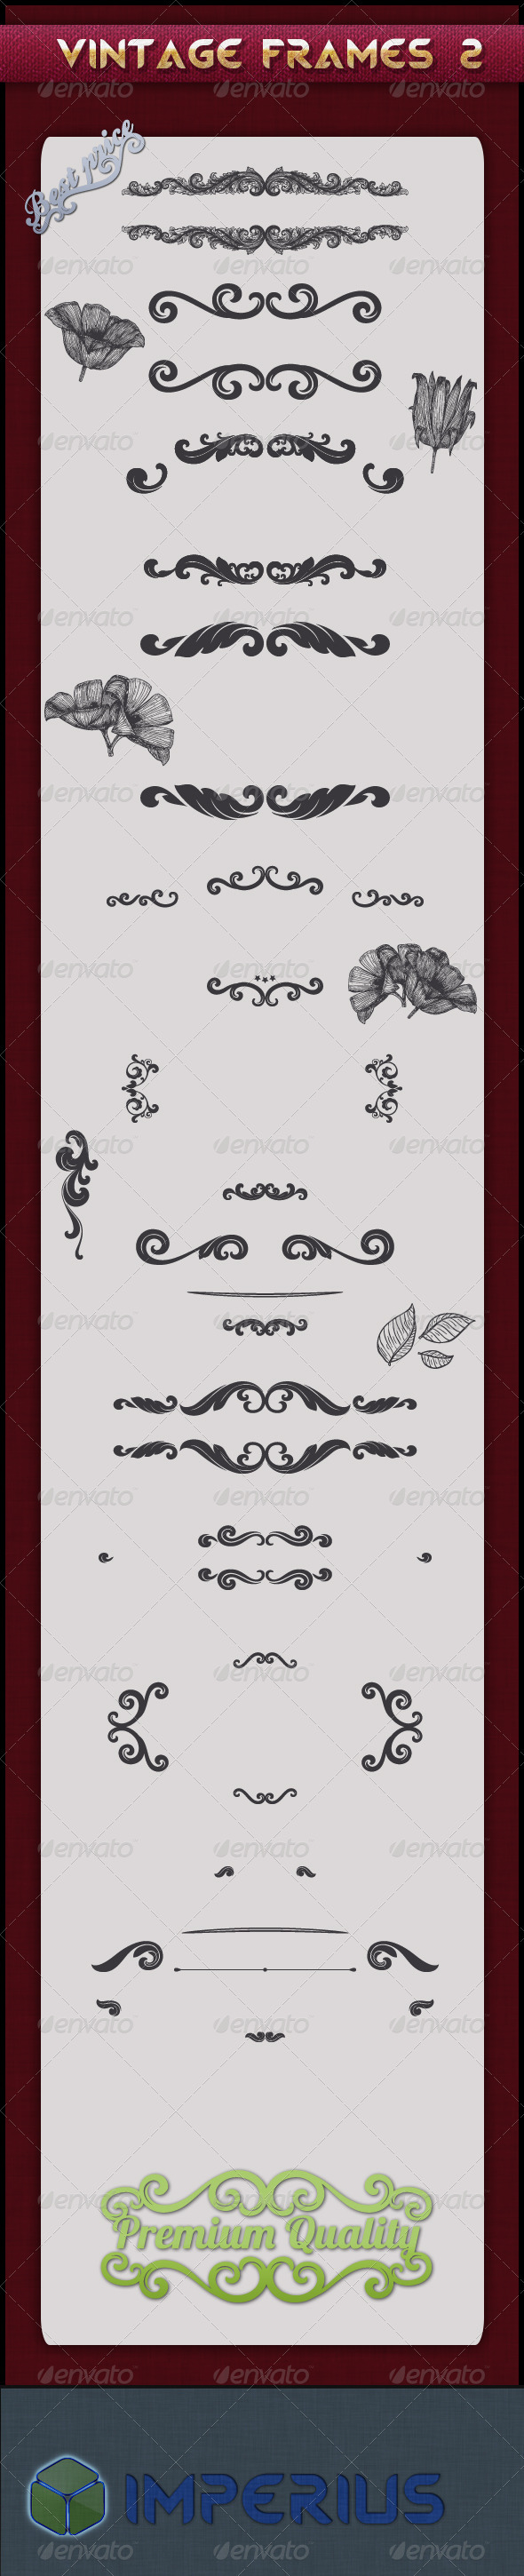 Vintage Frames 2 - Decorative Vectors